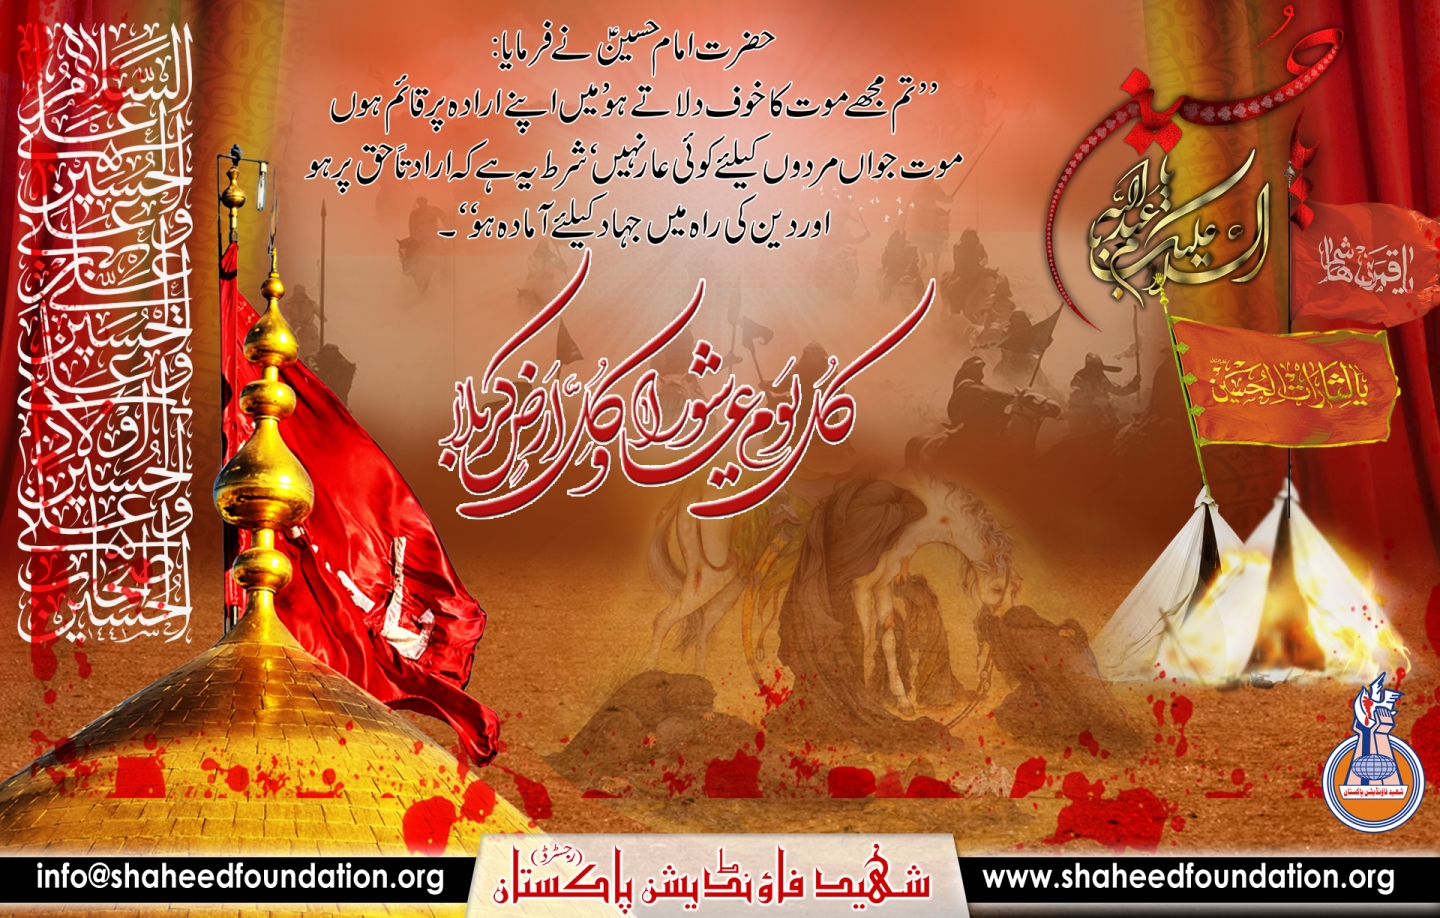 10th Moharram: The Day of Ashura